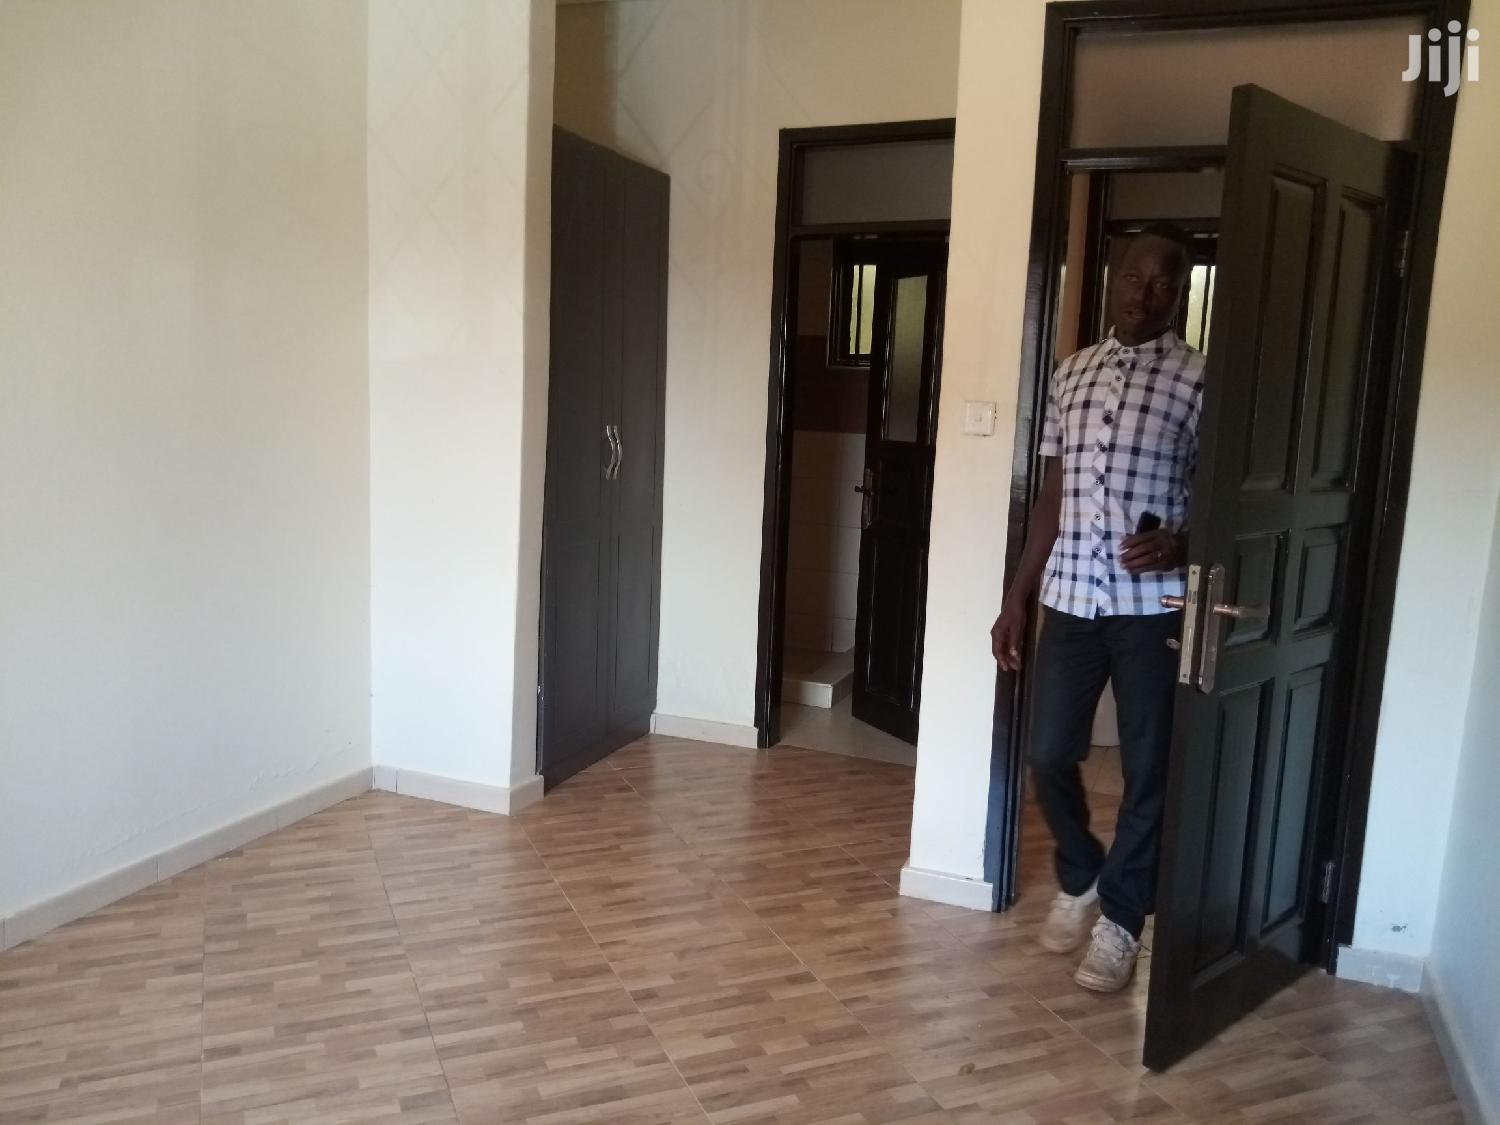 Kisasi Stunning One Bedroom House For Rent | Houses & Apartments For Rent for sale in Kampala, Central Region, Uganda